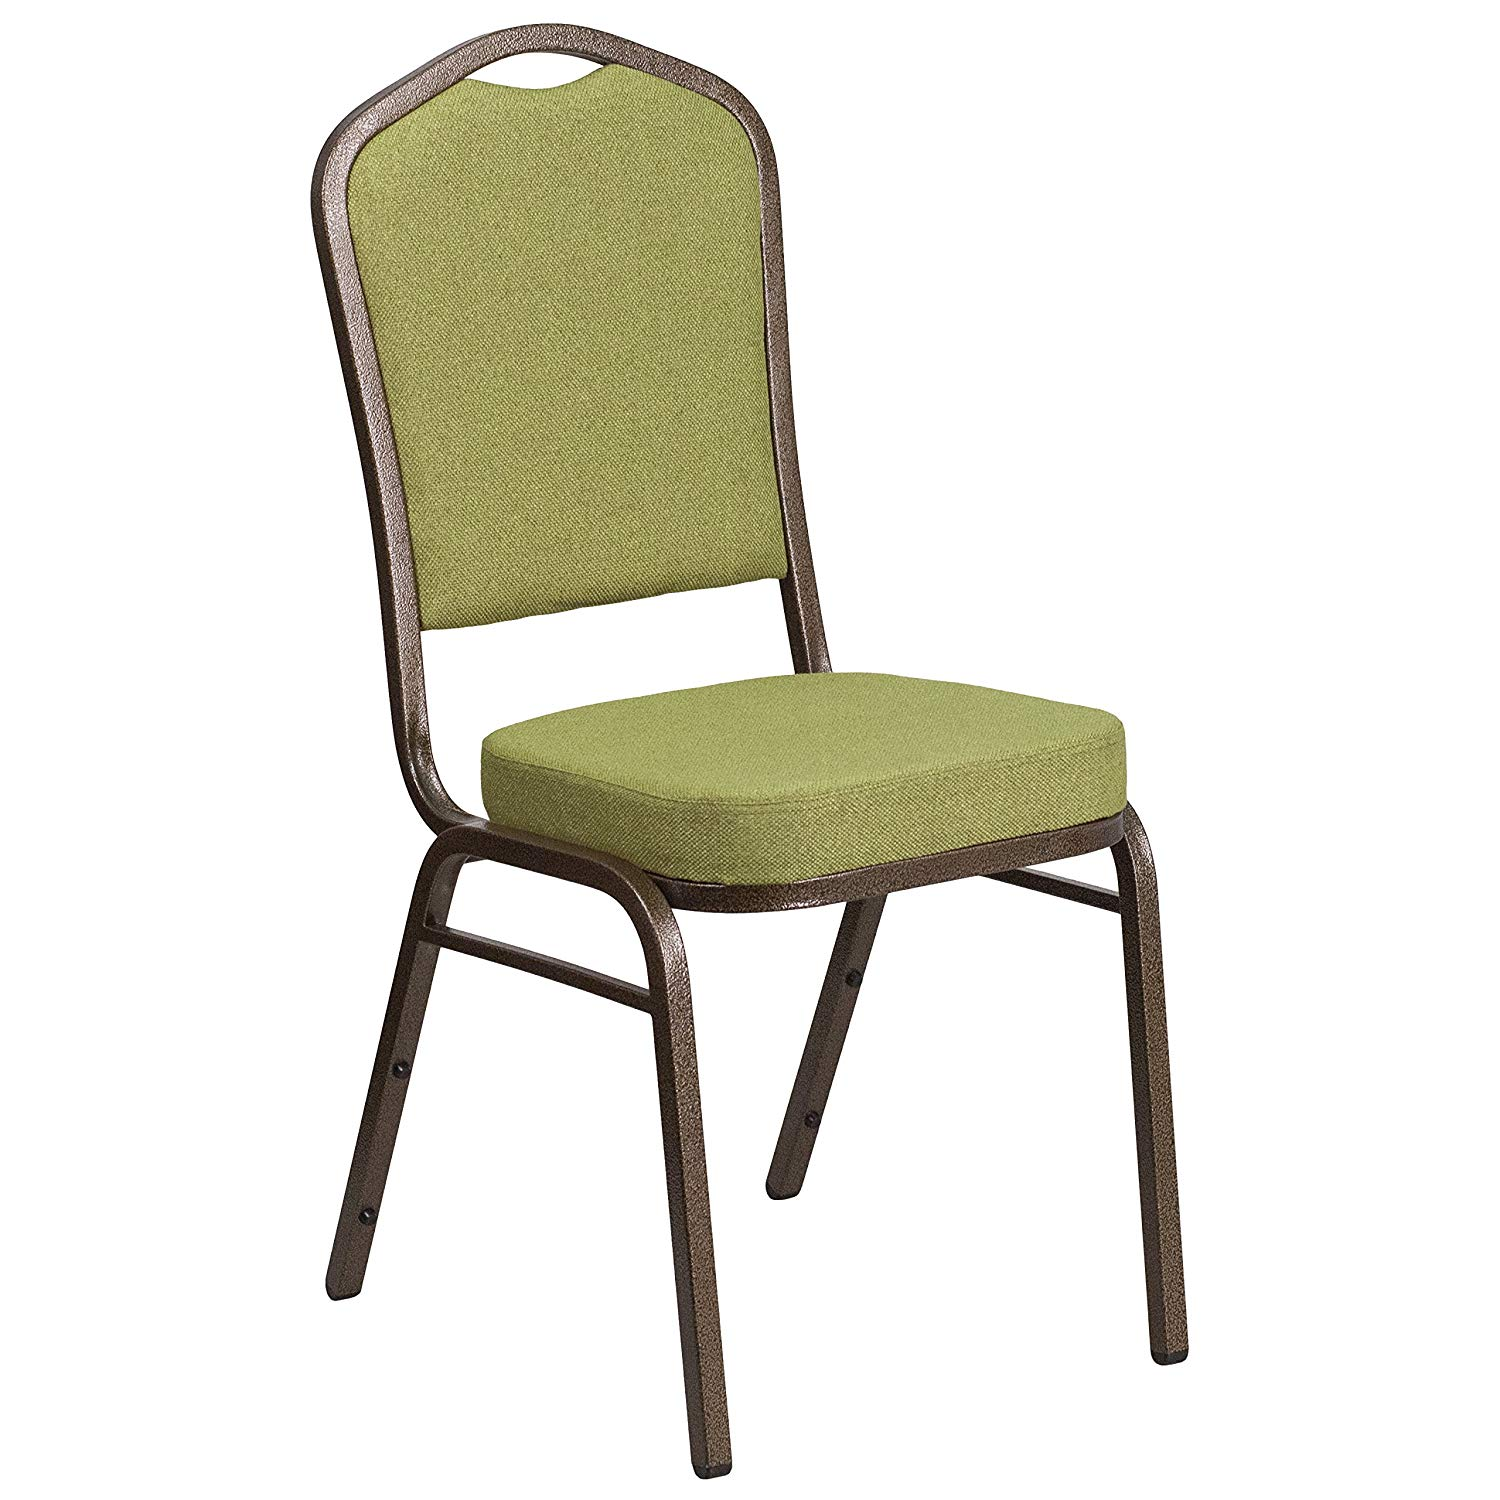 #45 - CROWN BACK BANQUET CHAIR WITH MOSS FABRIC